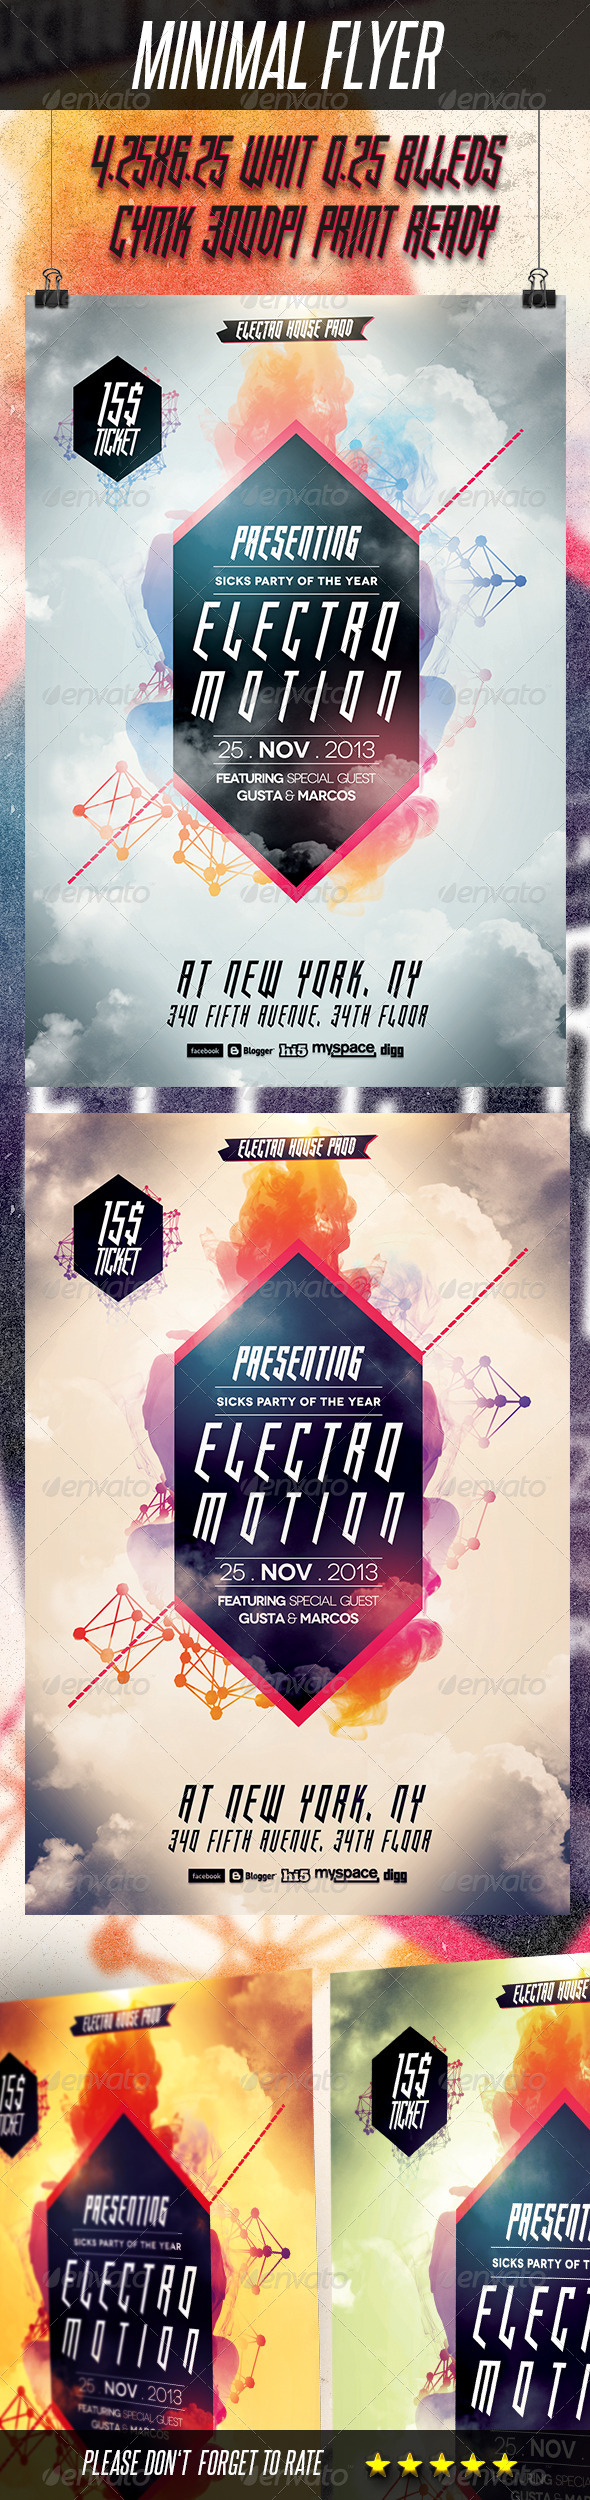 GraphicRiver Minimal Flyer 5755238